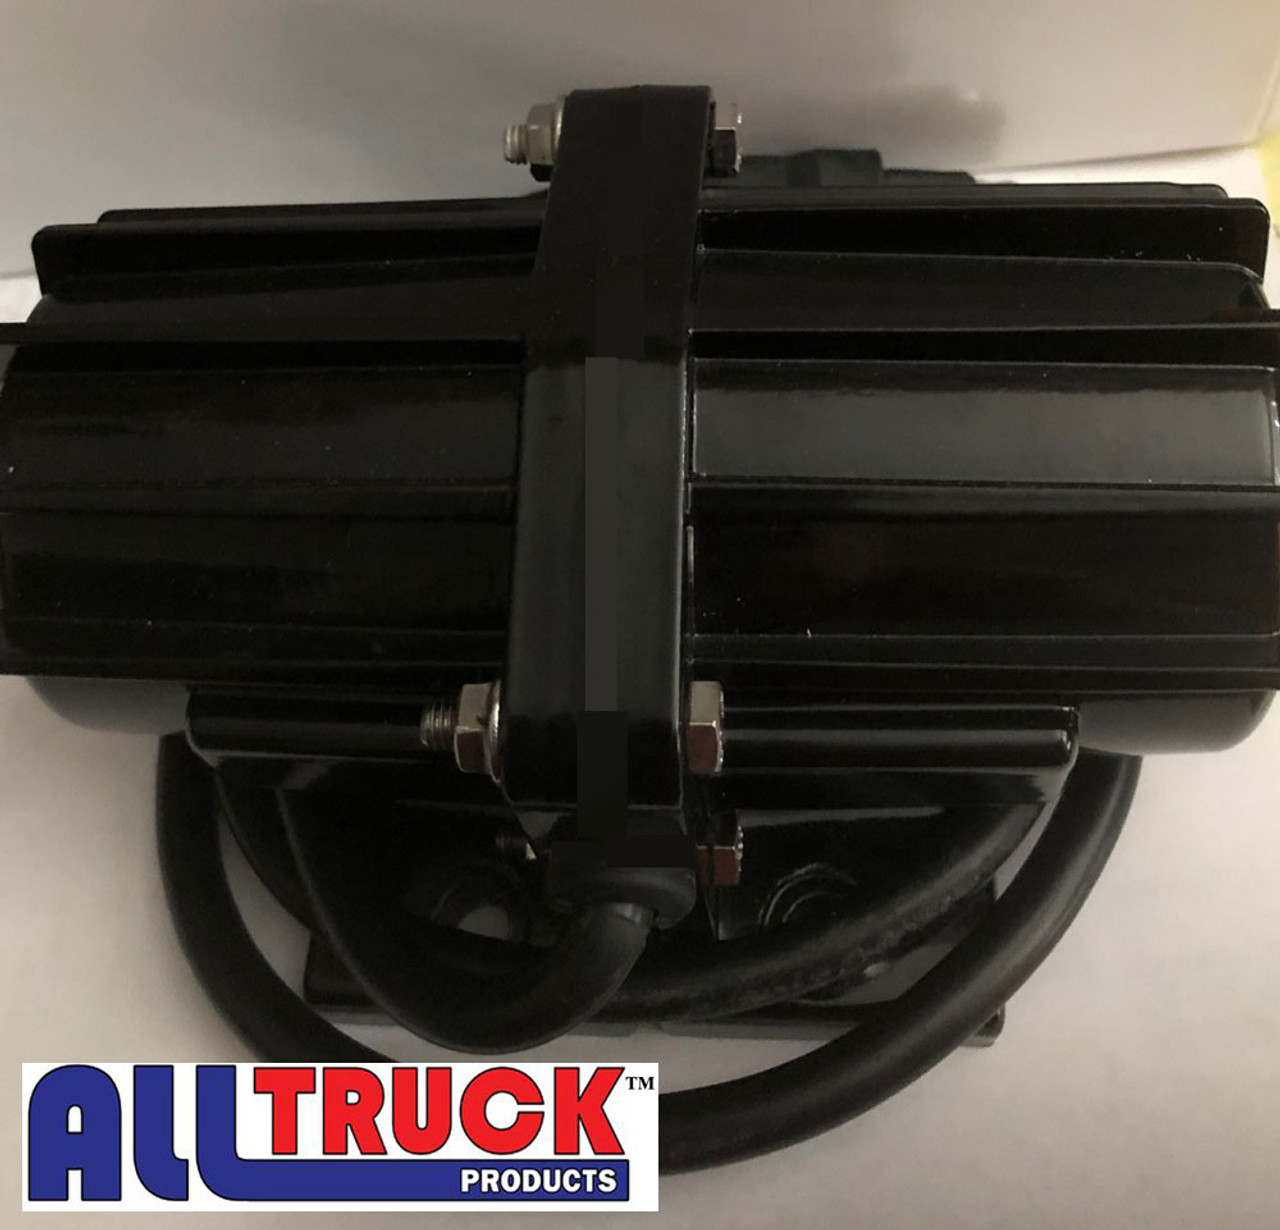 ALL TRUCK PRODUCTS ATPVB080 VIBRATOR 8